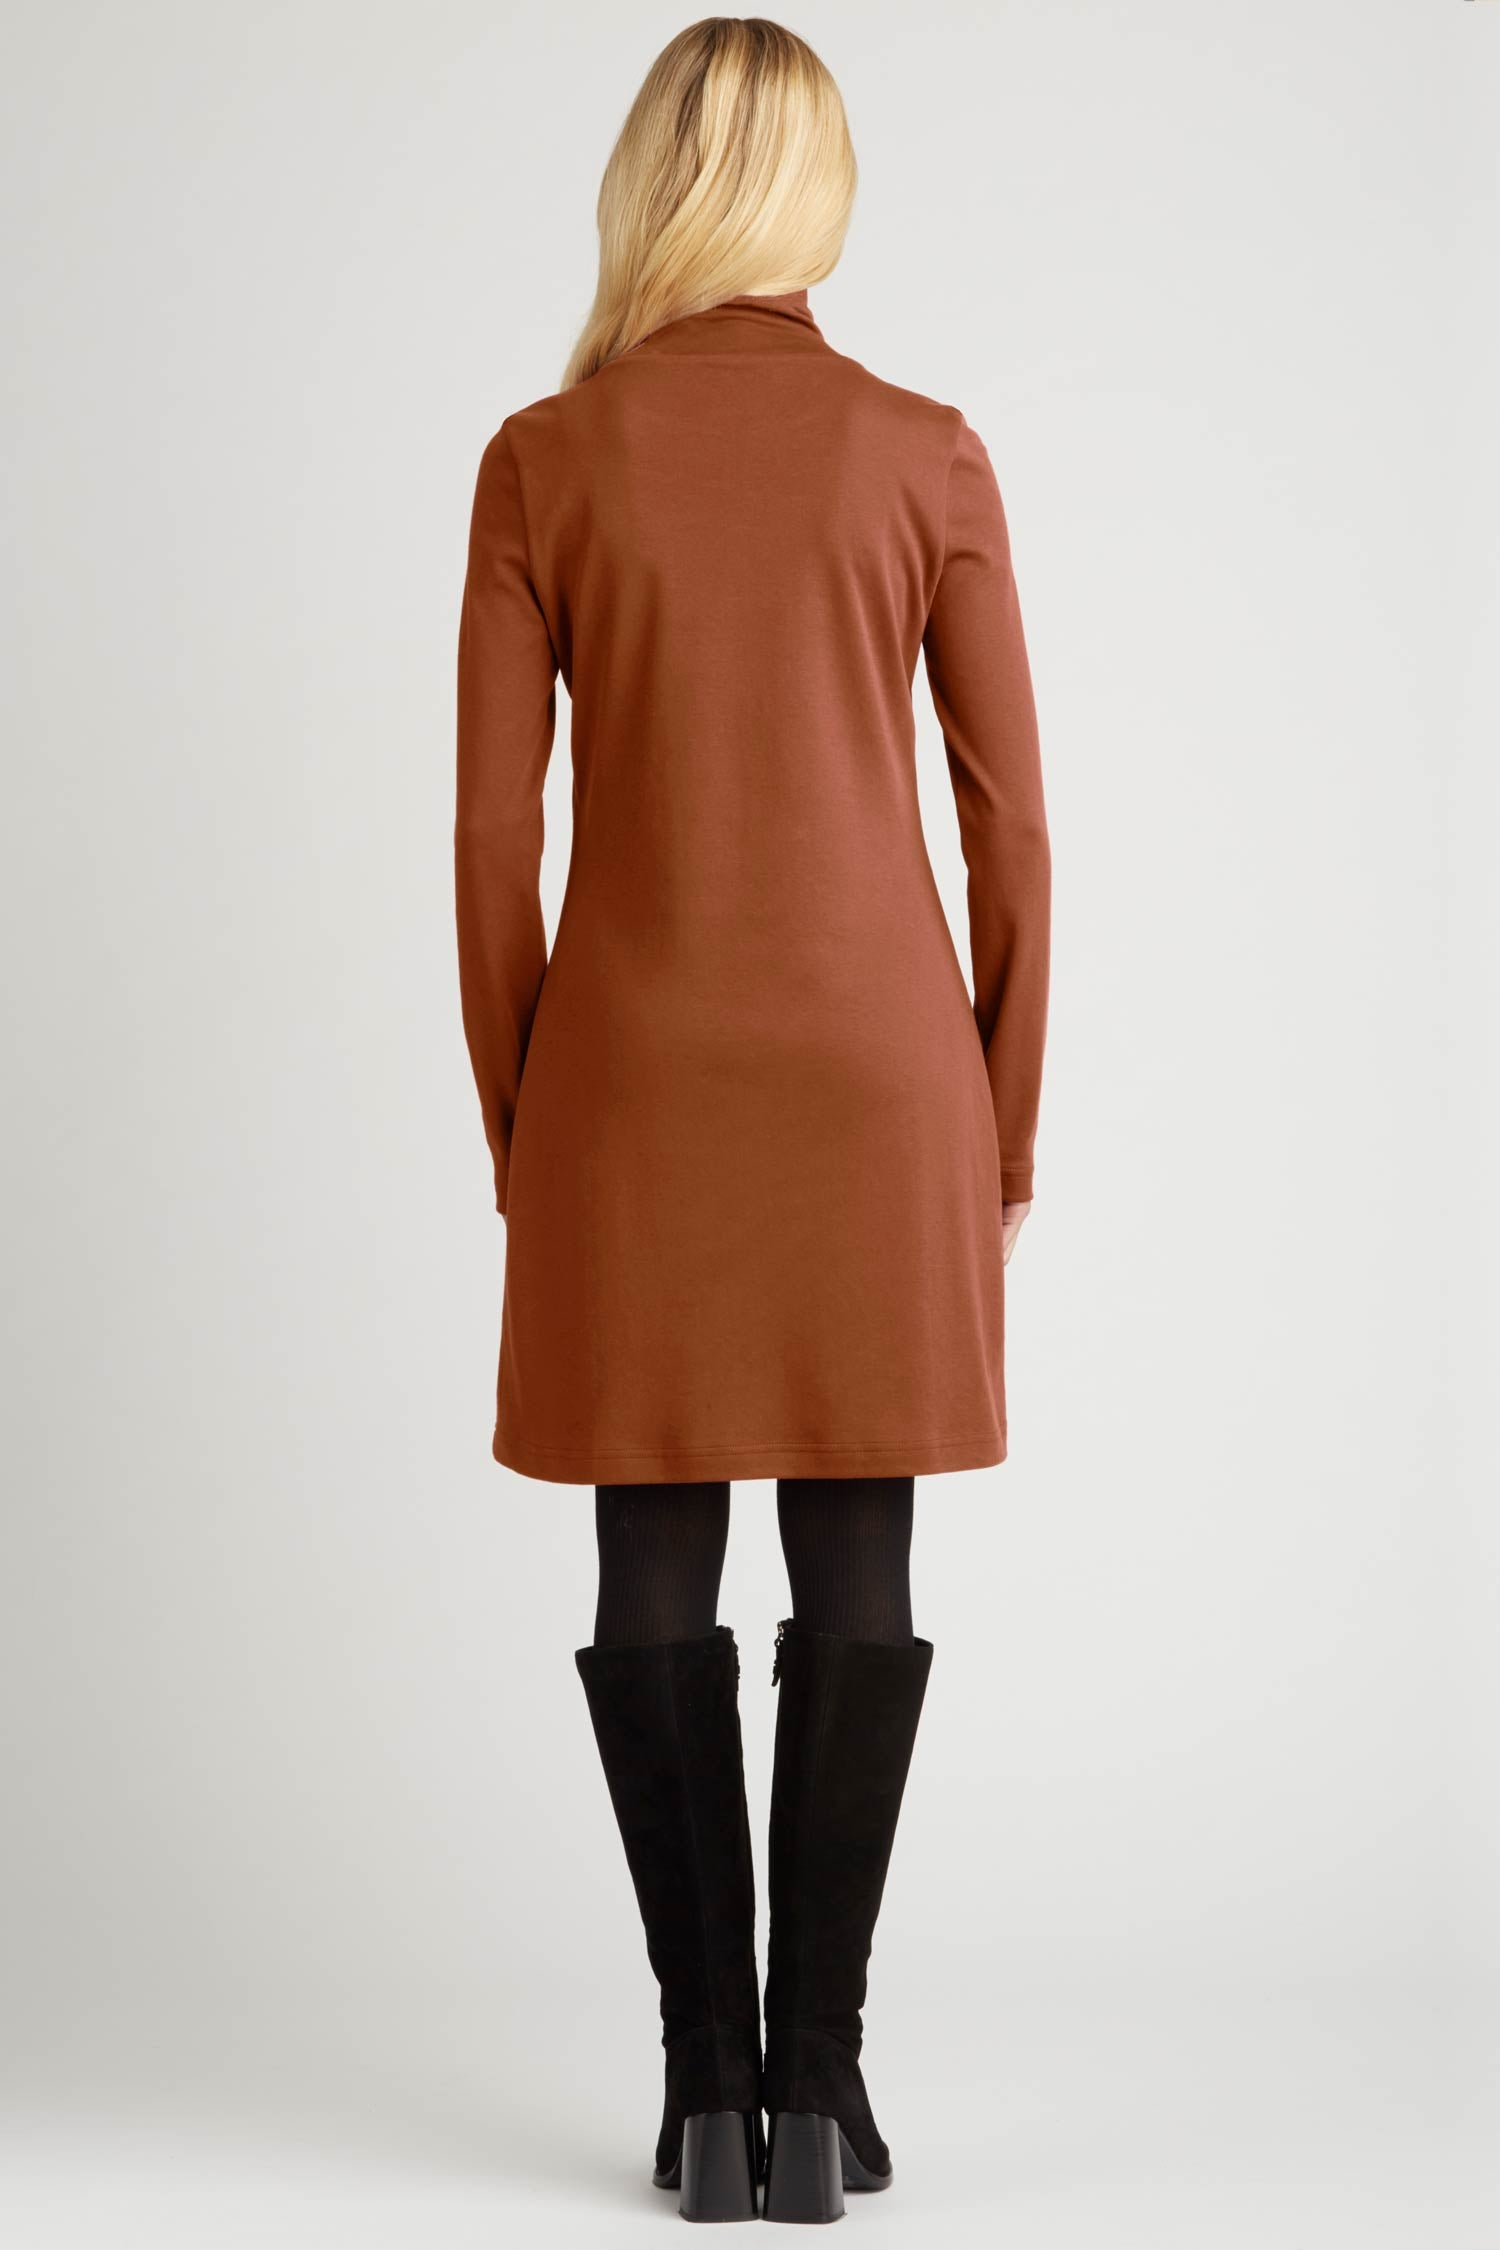 Womens Turtleneck Dress in Brown | Organic Cotton Clothing